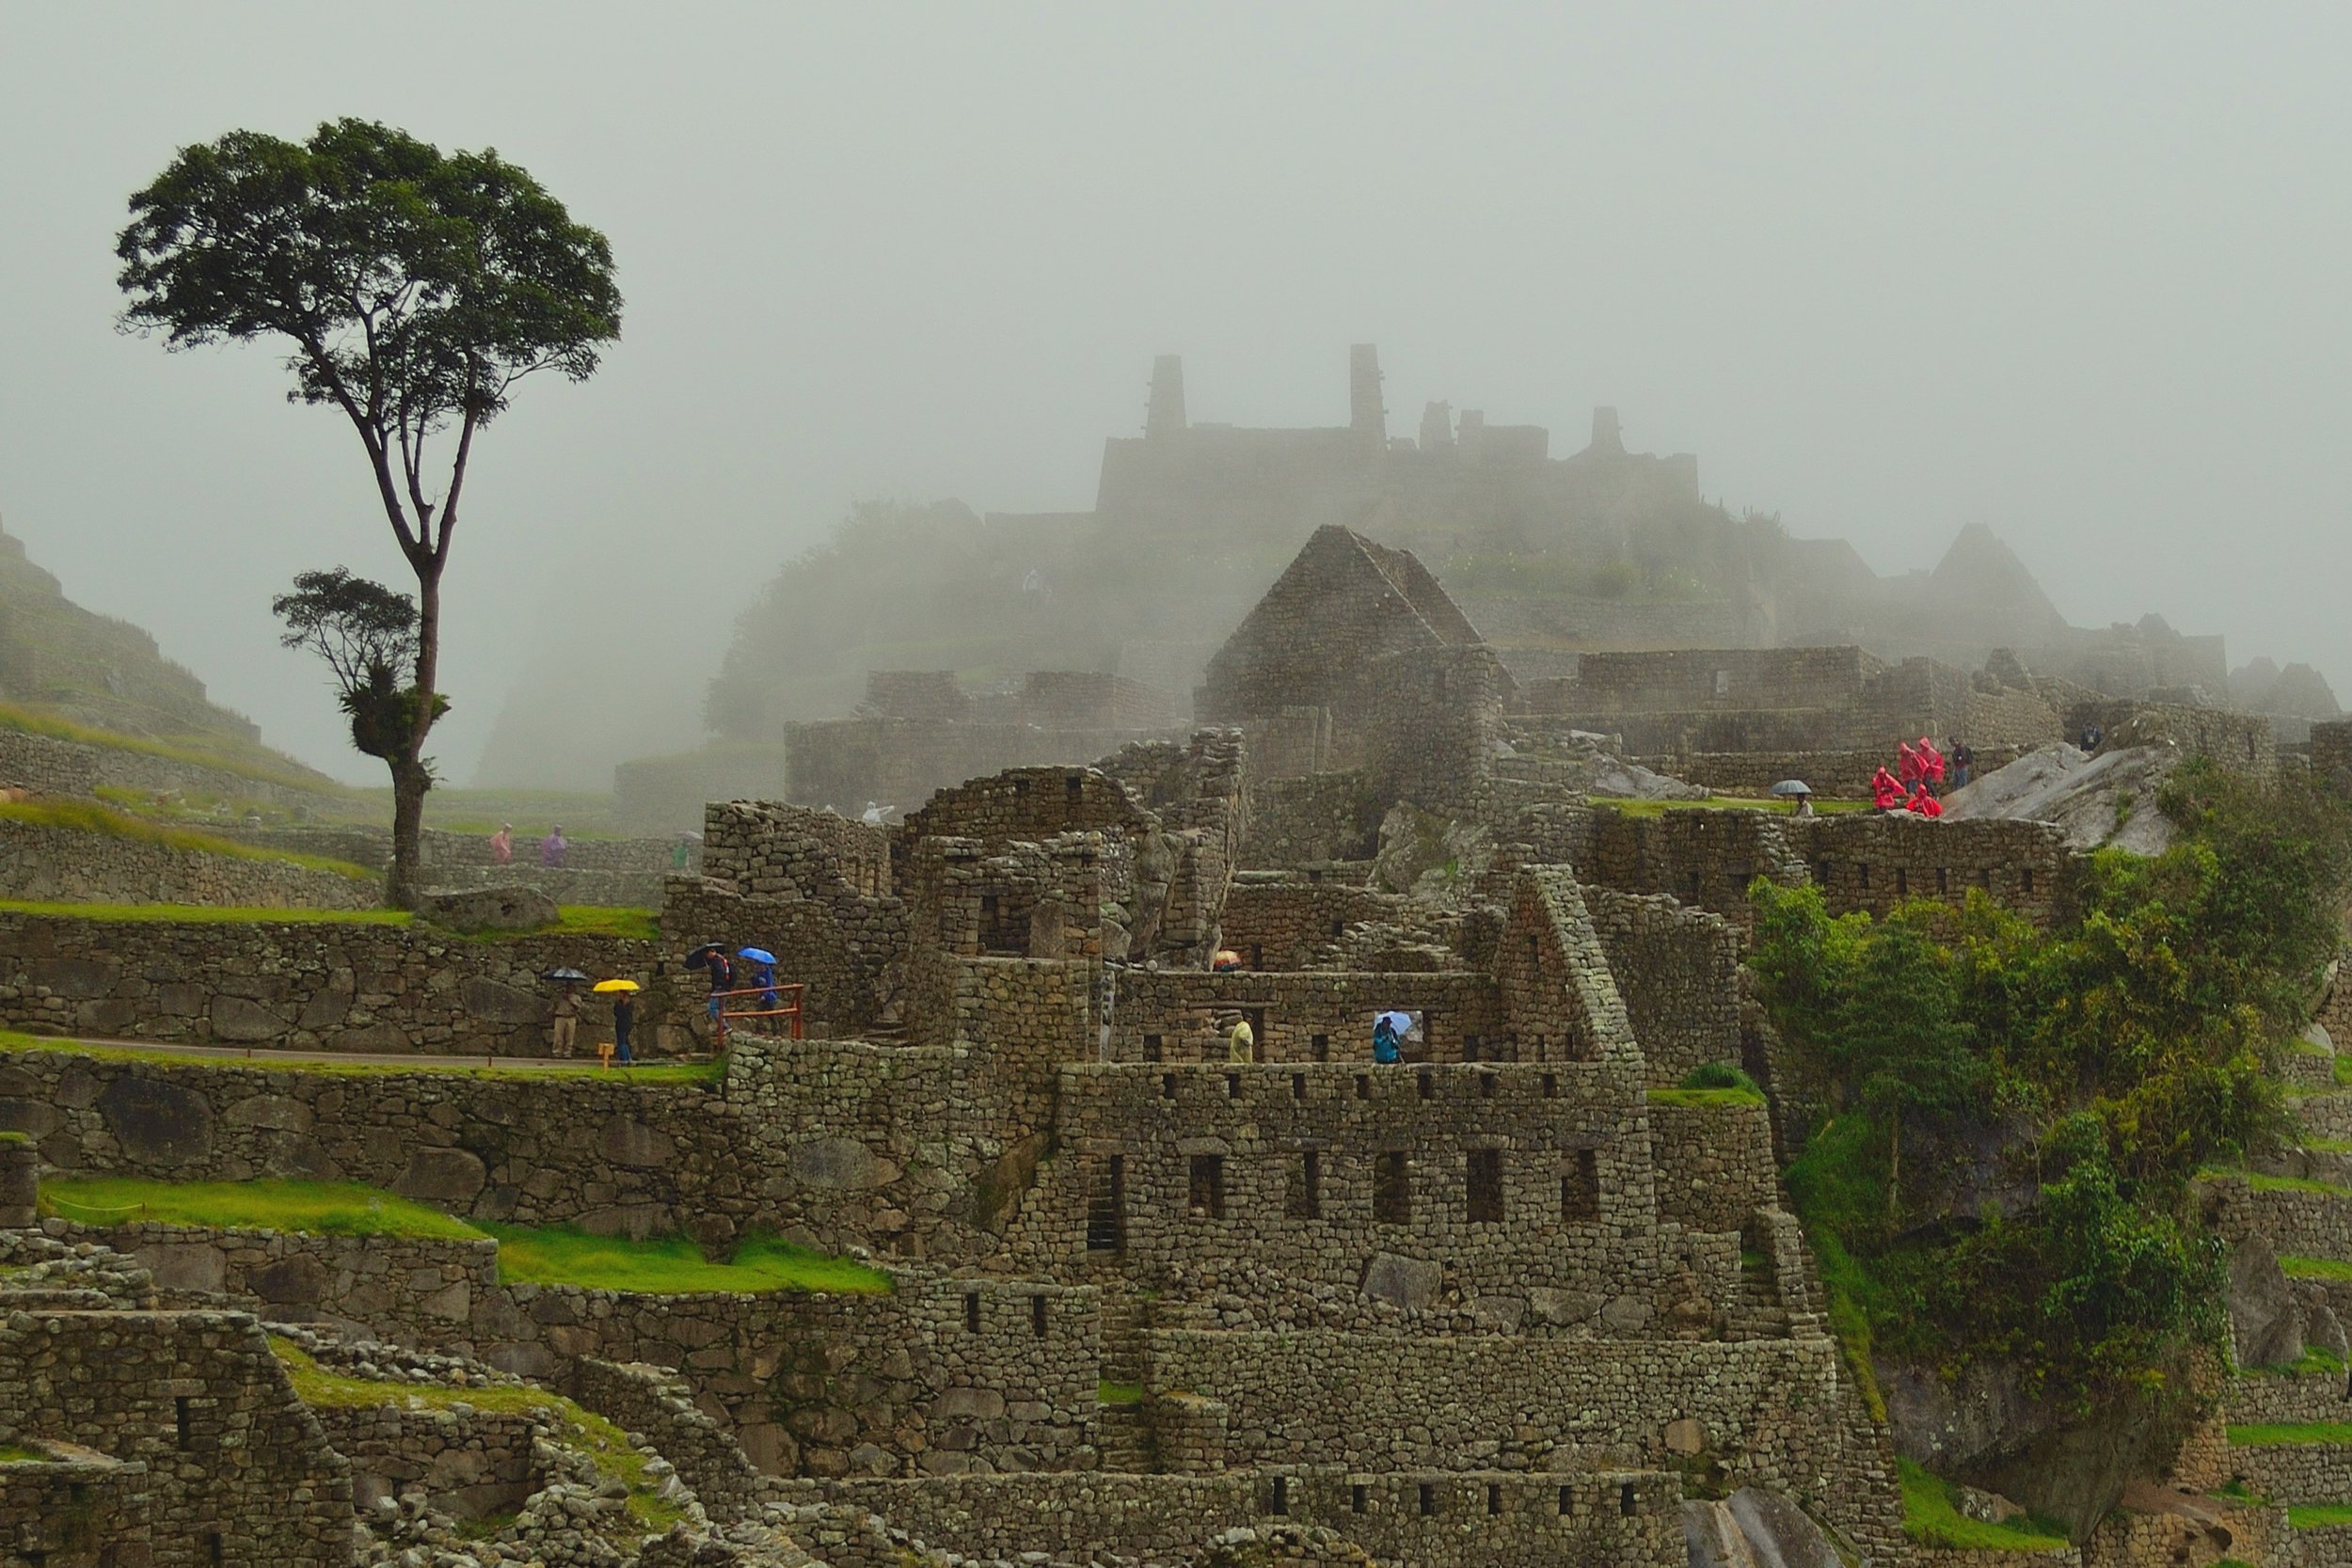 Clouds, fog and rain are a familiar sight at Machu Picchu. The weather up here in the mountains is unpredictable.